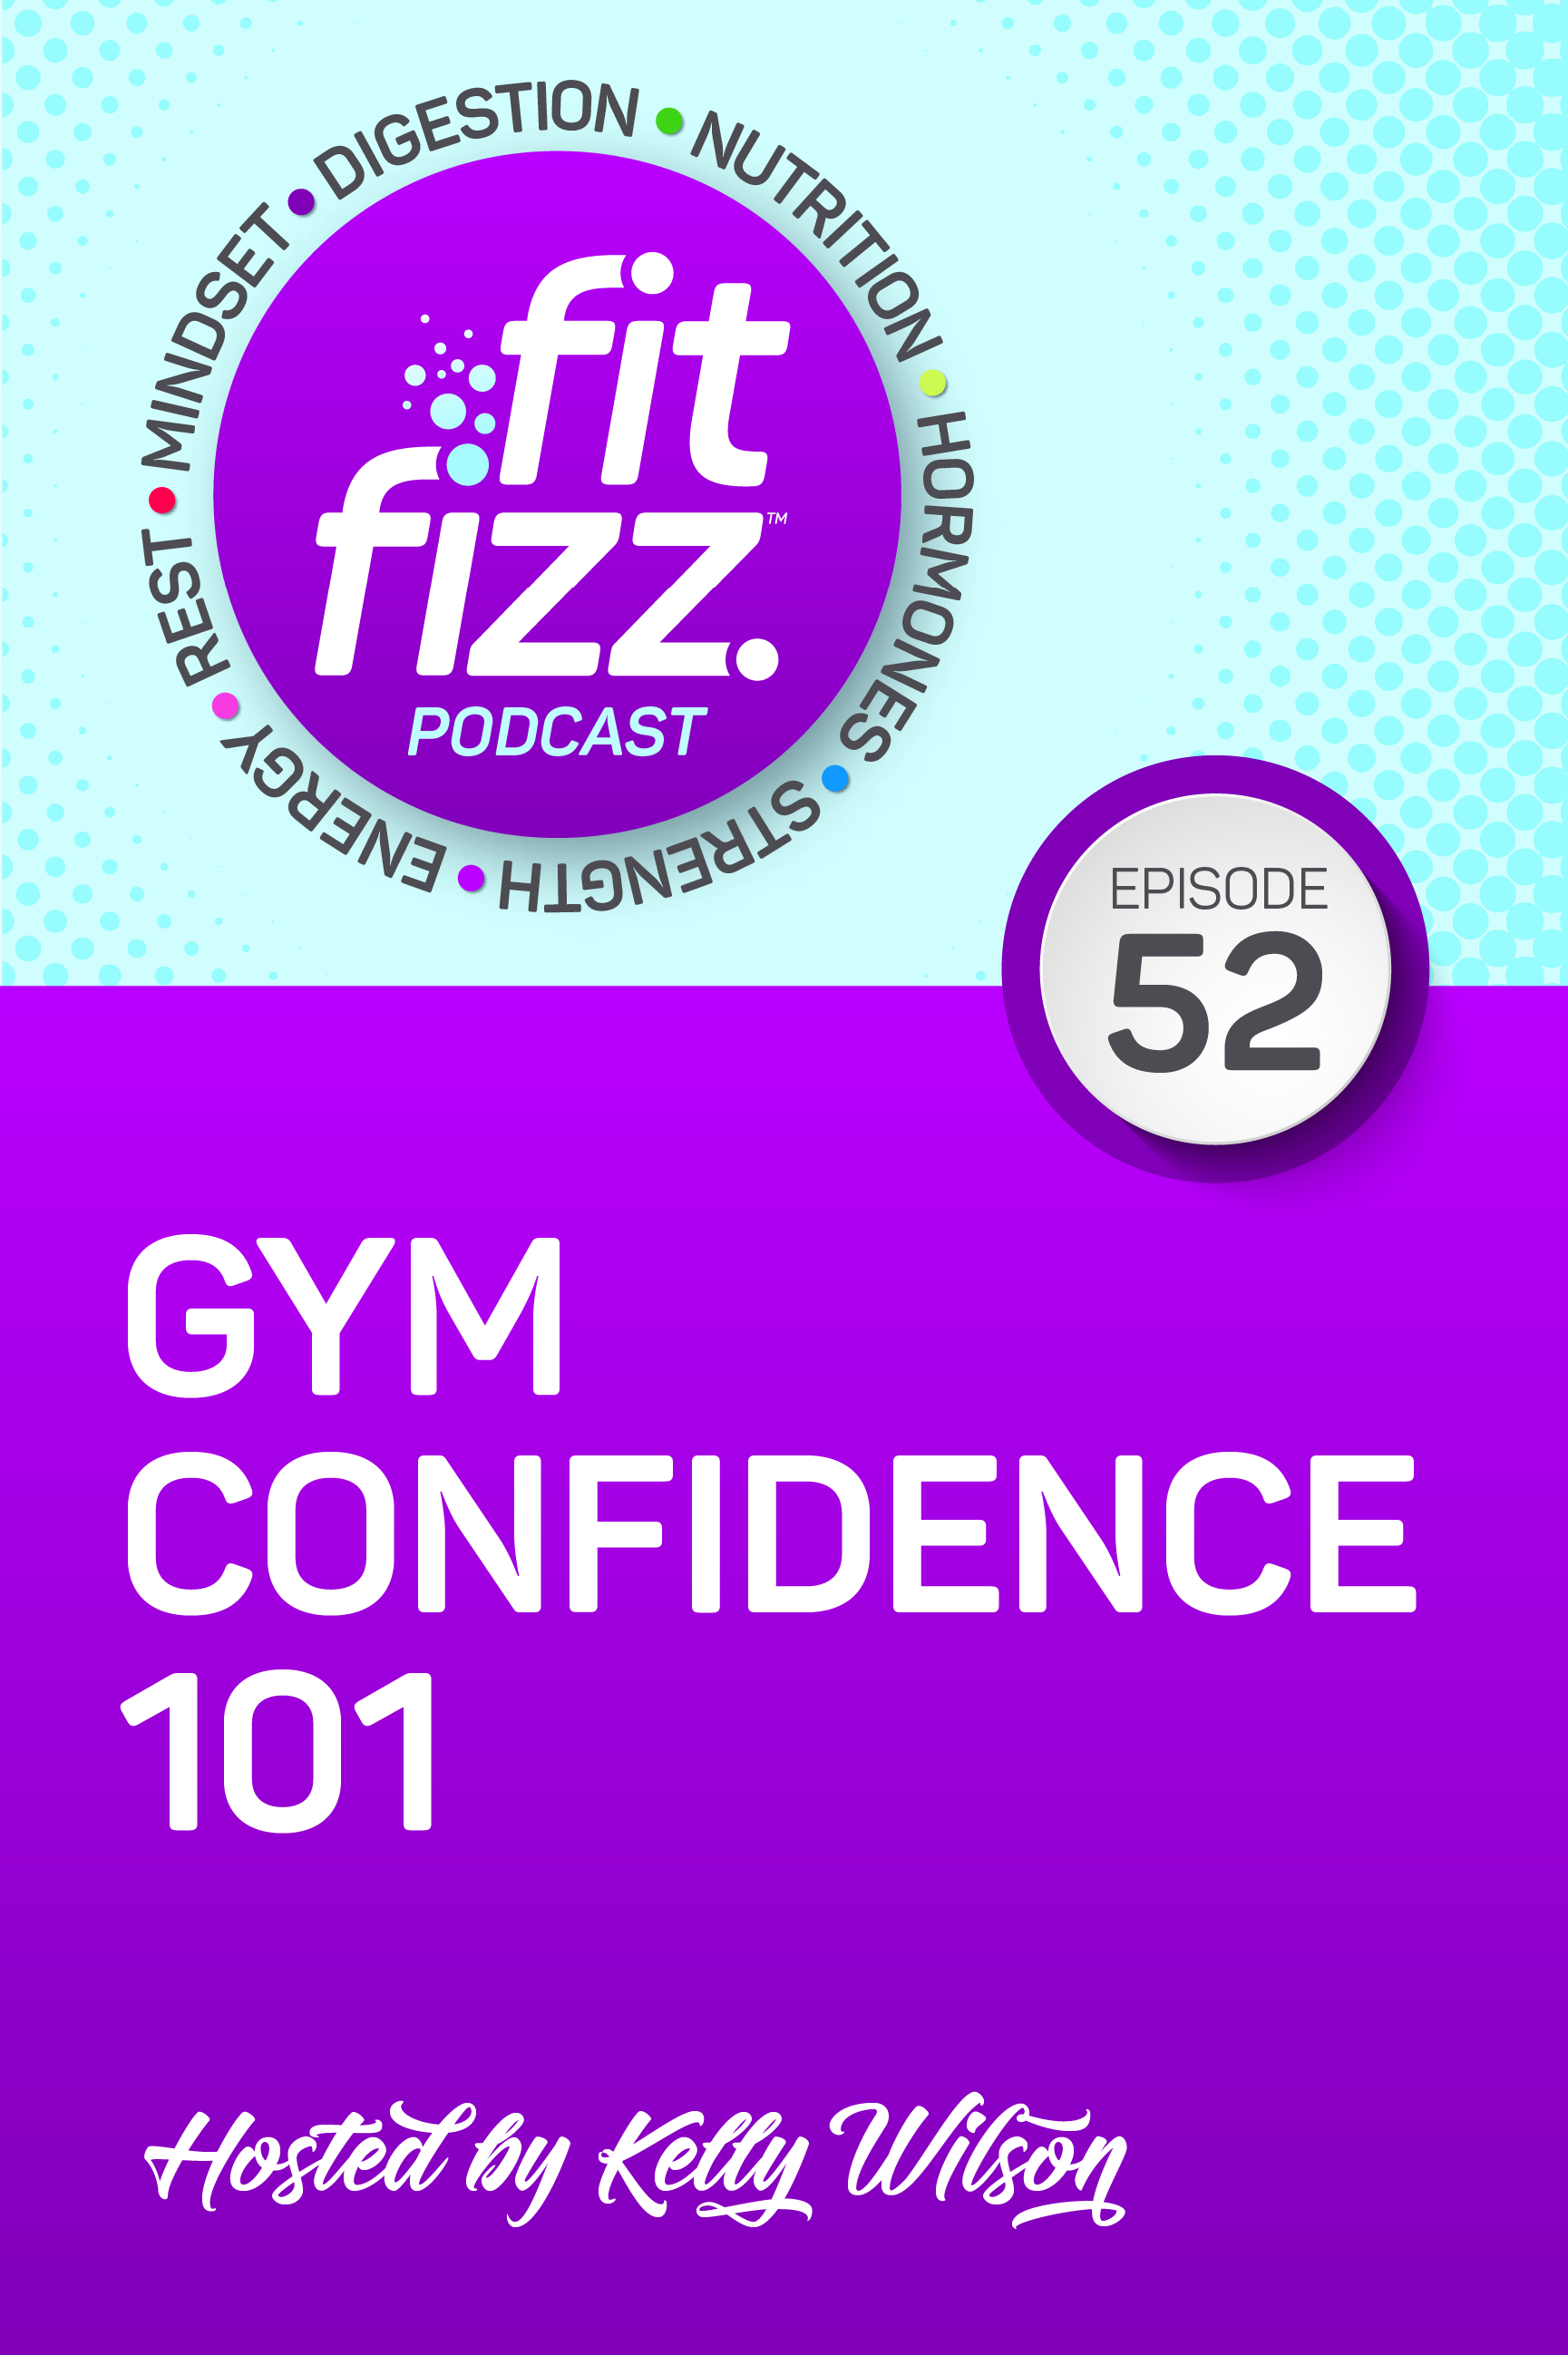 Ep. 52: Gym Confidence 101